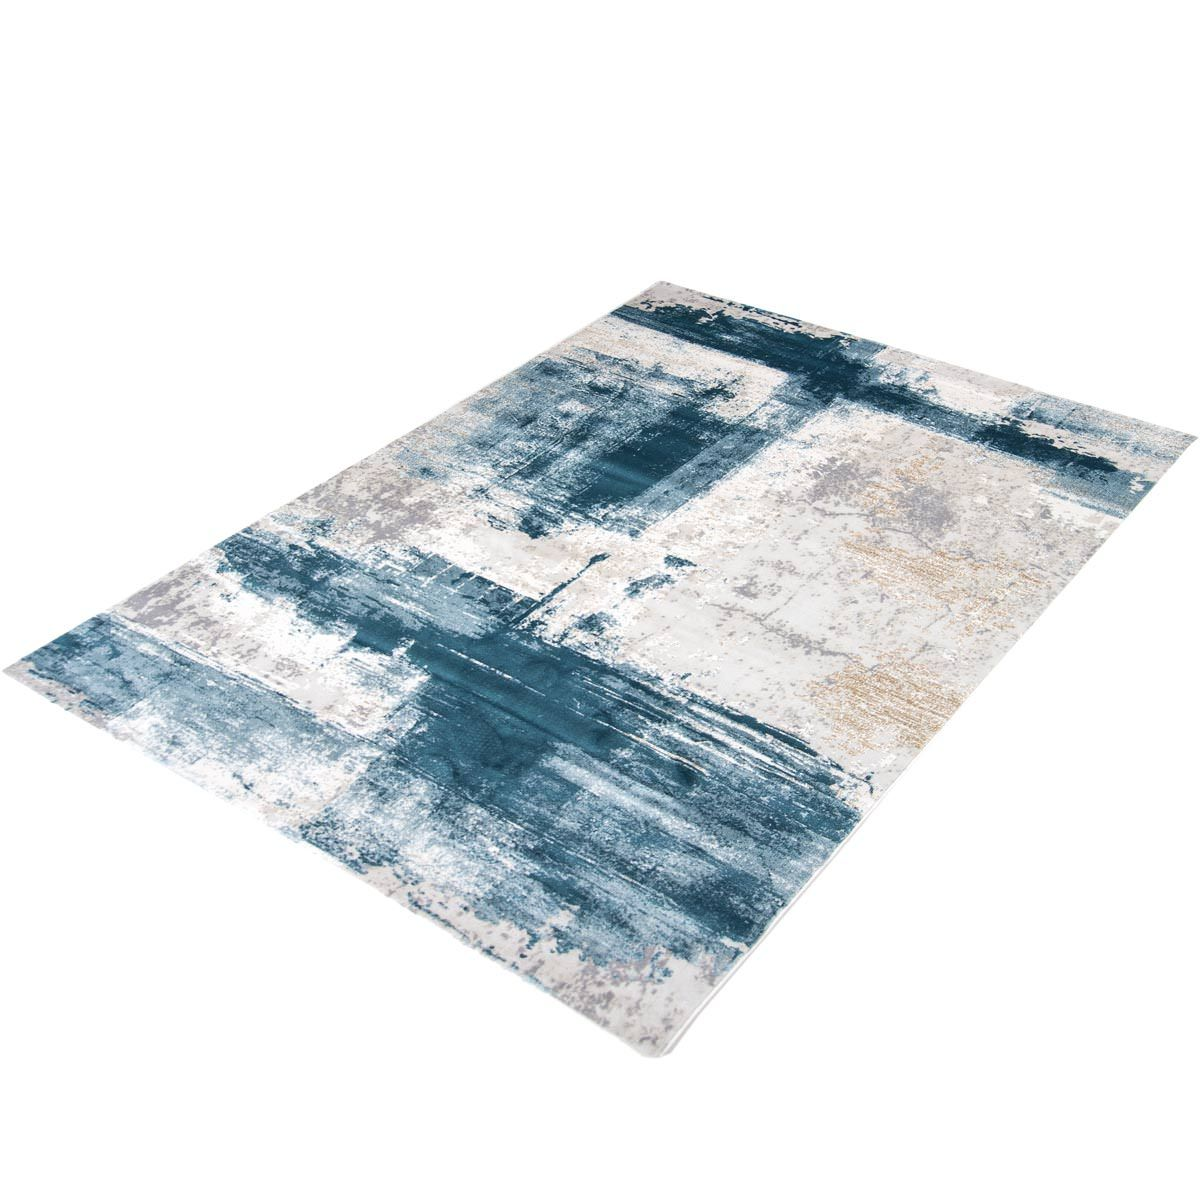 Madrid Rug 04 Blue 7